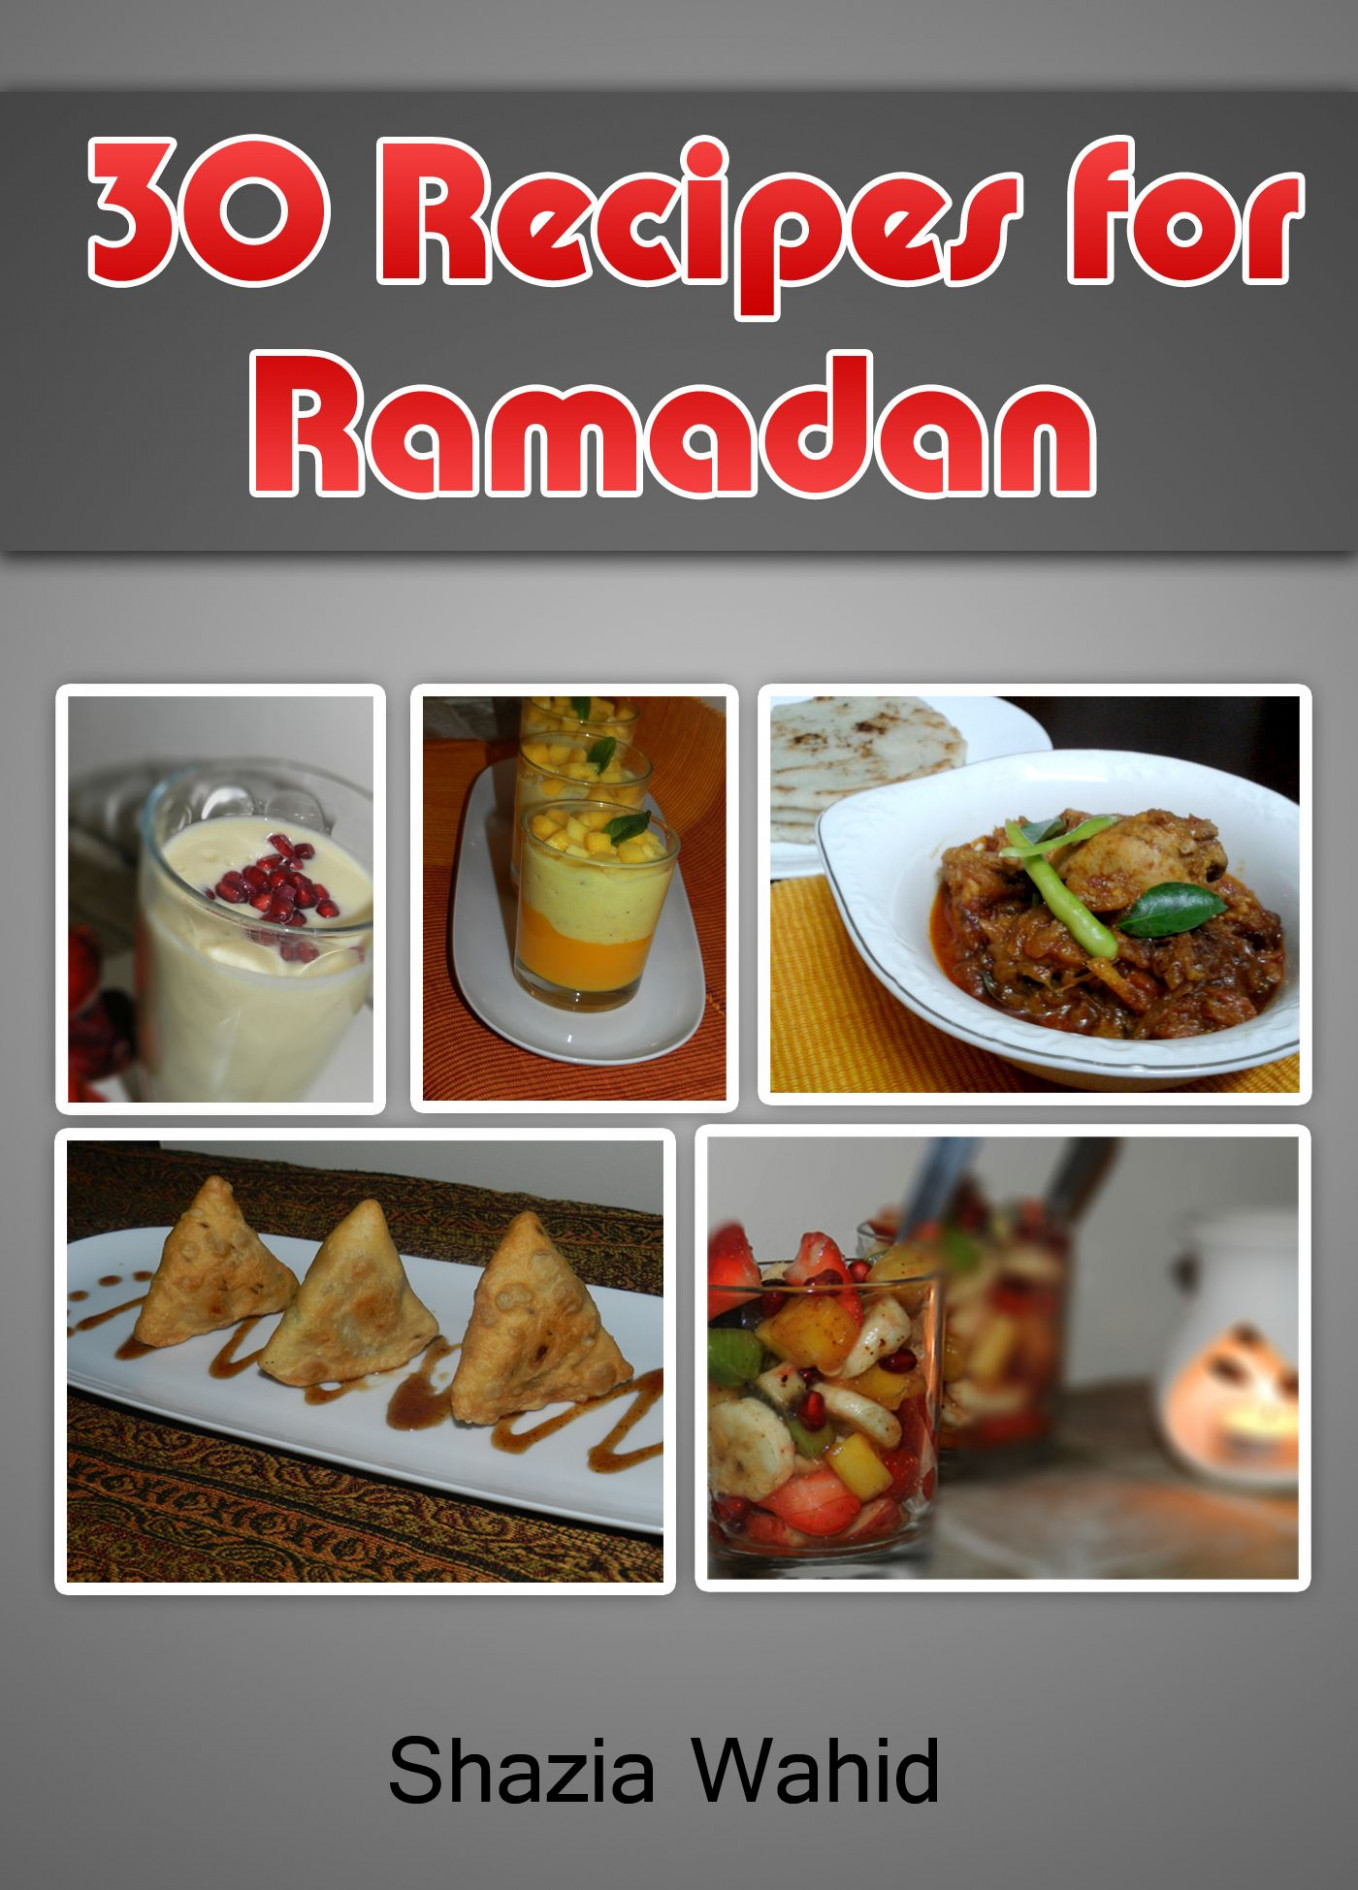 A compilation of 30 recipes for Ramadan - including Iftari ..